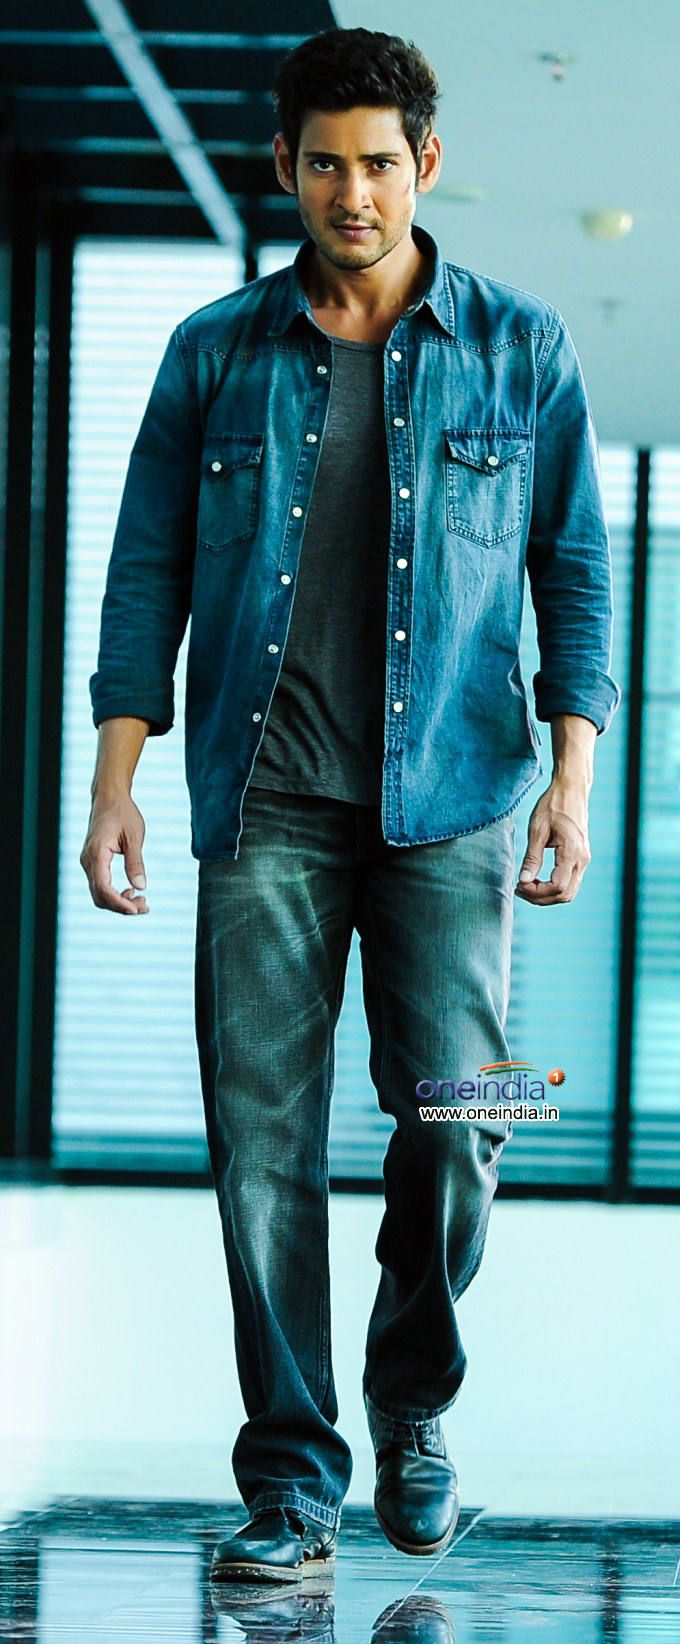 mahesh-babu-still-from-1-nenokkadine-movie_138898286720.jpg (680×1644)